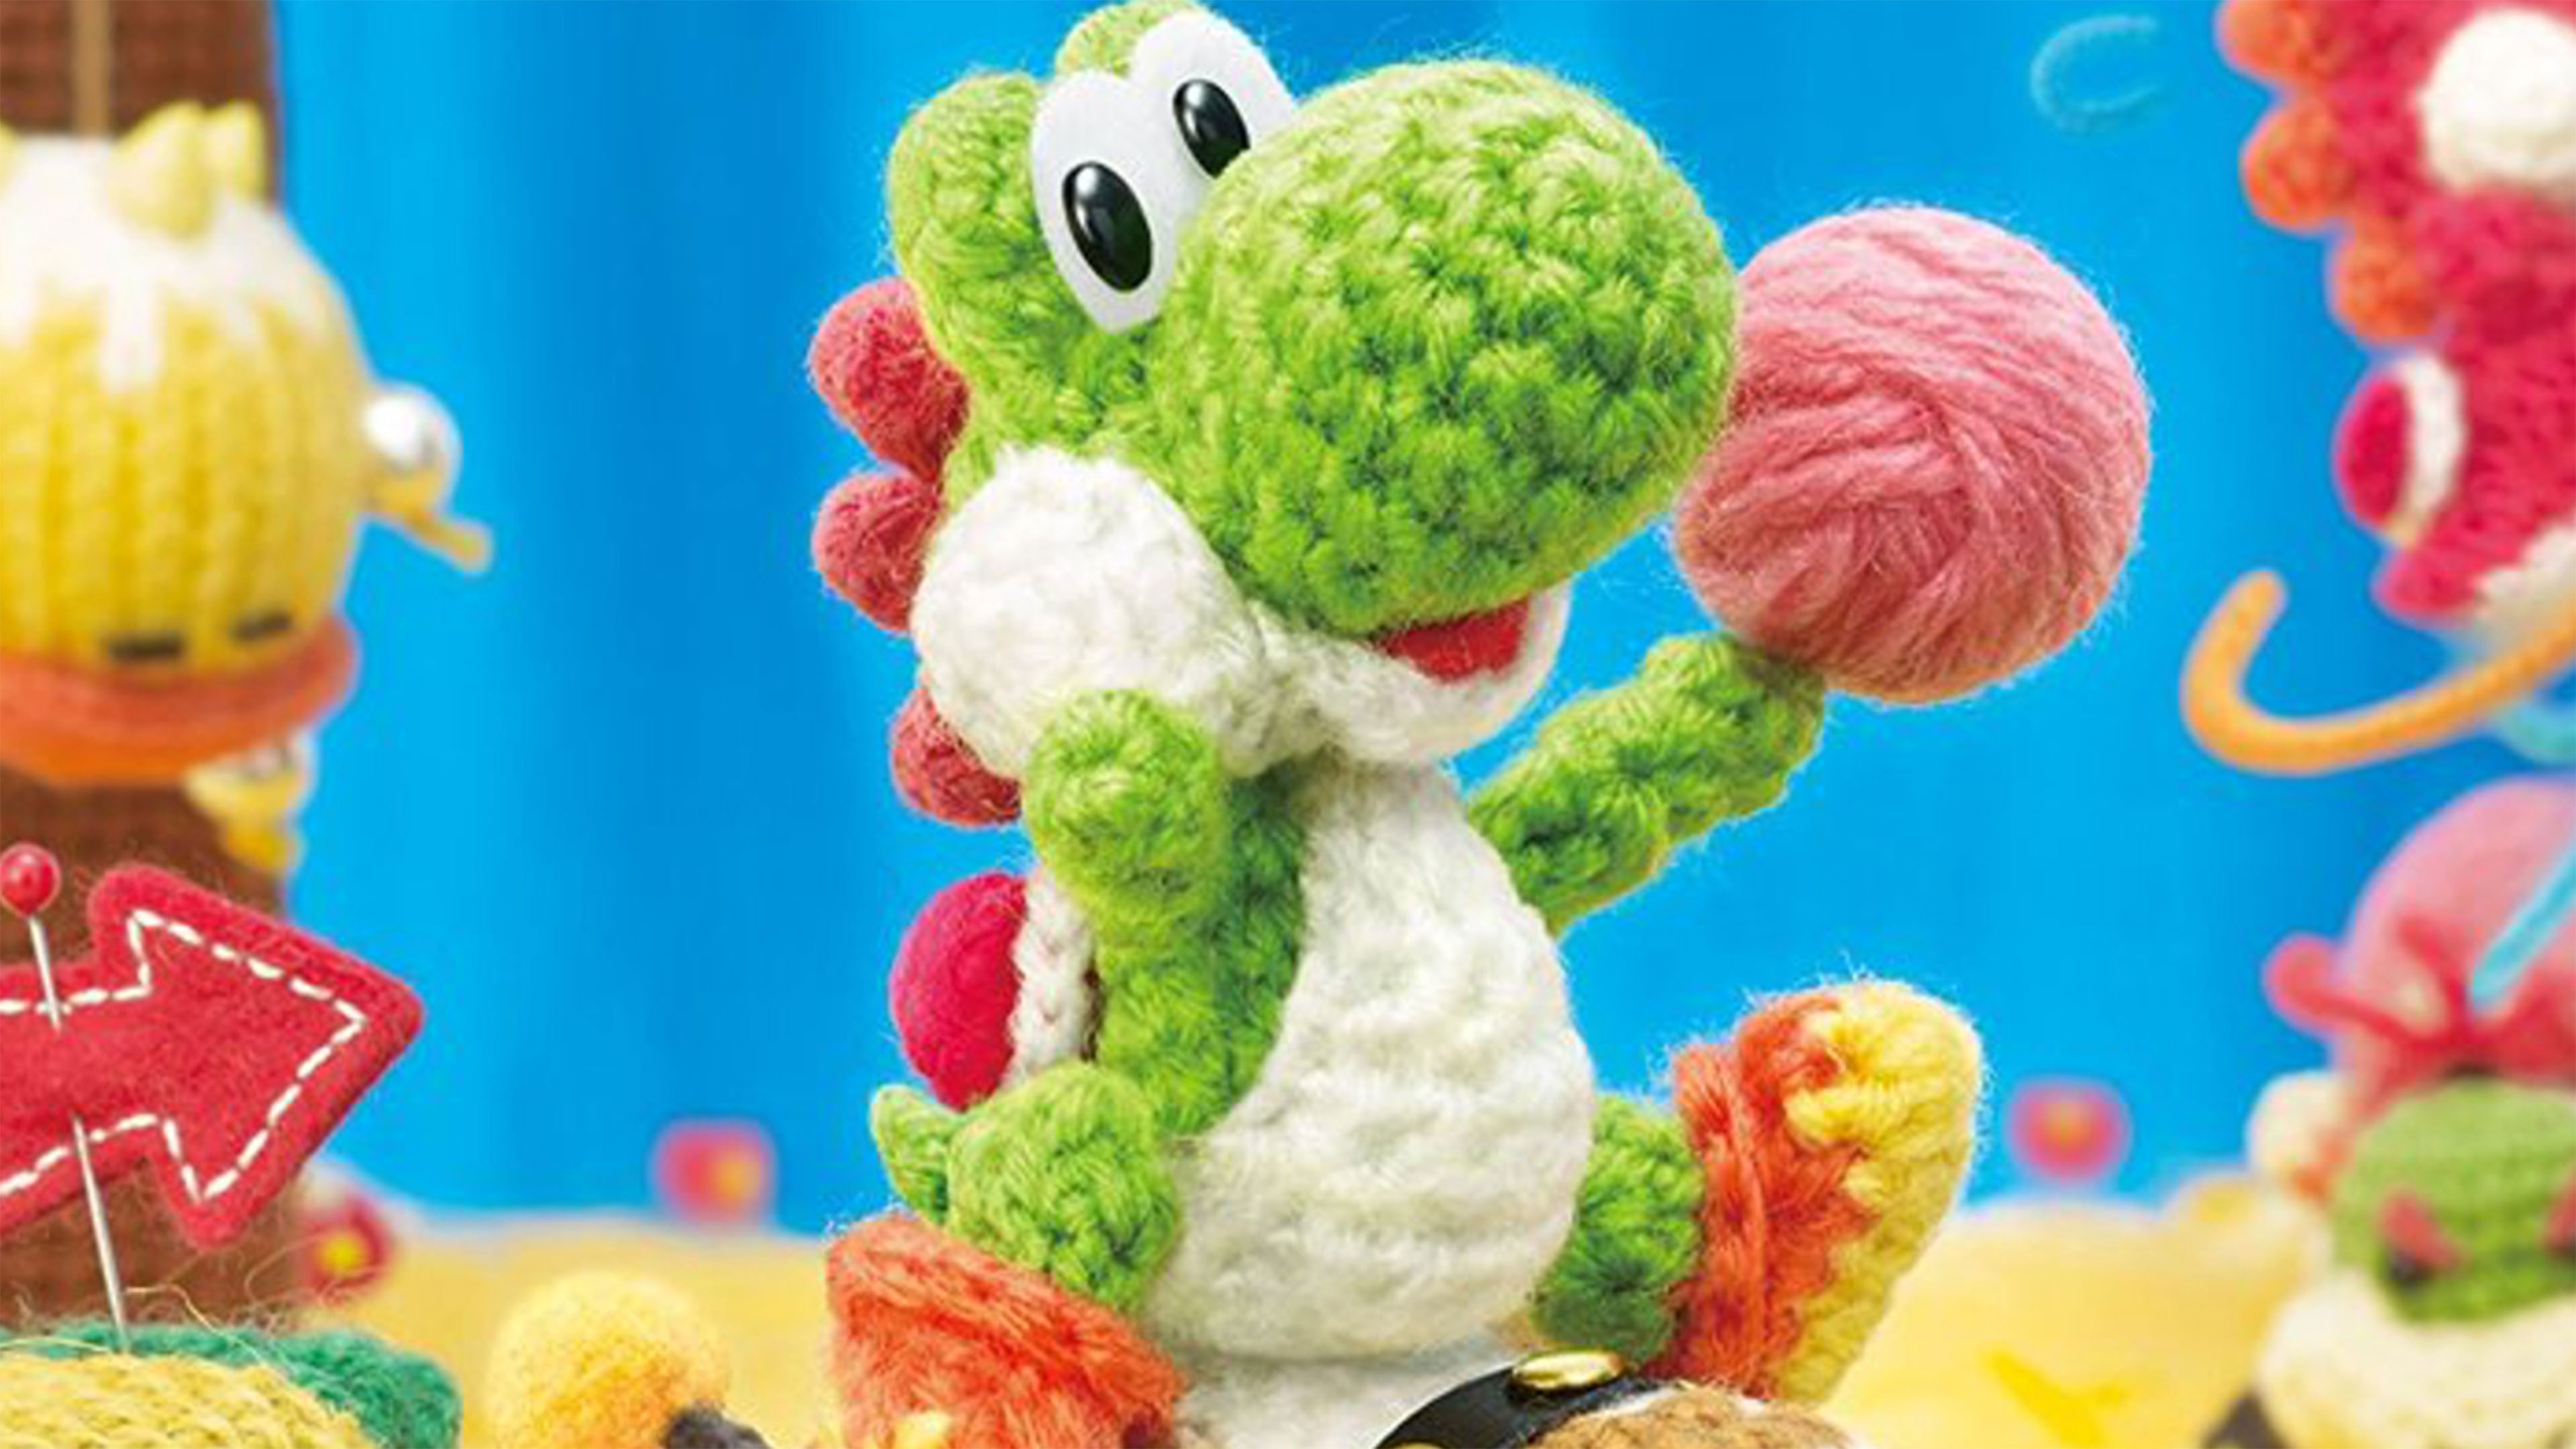 Yoshi's Woolly World 4K Wallpaper ...